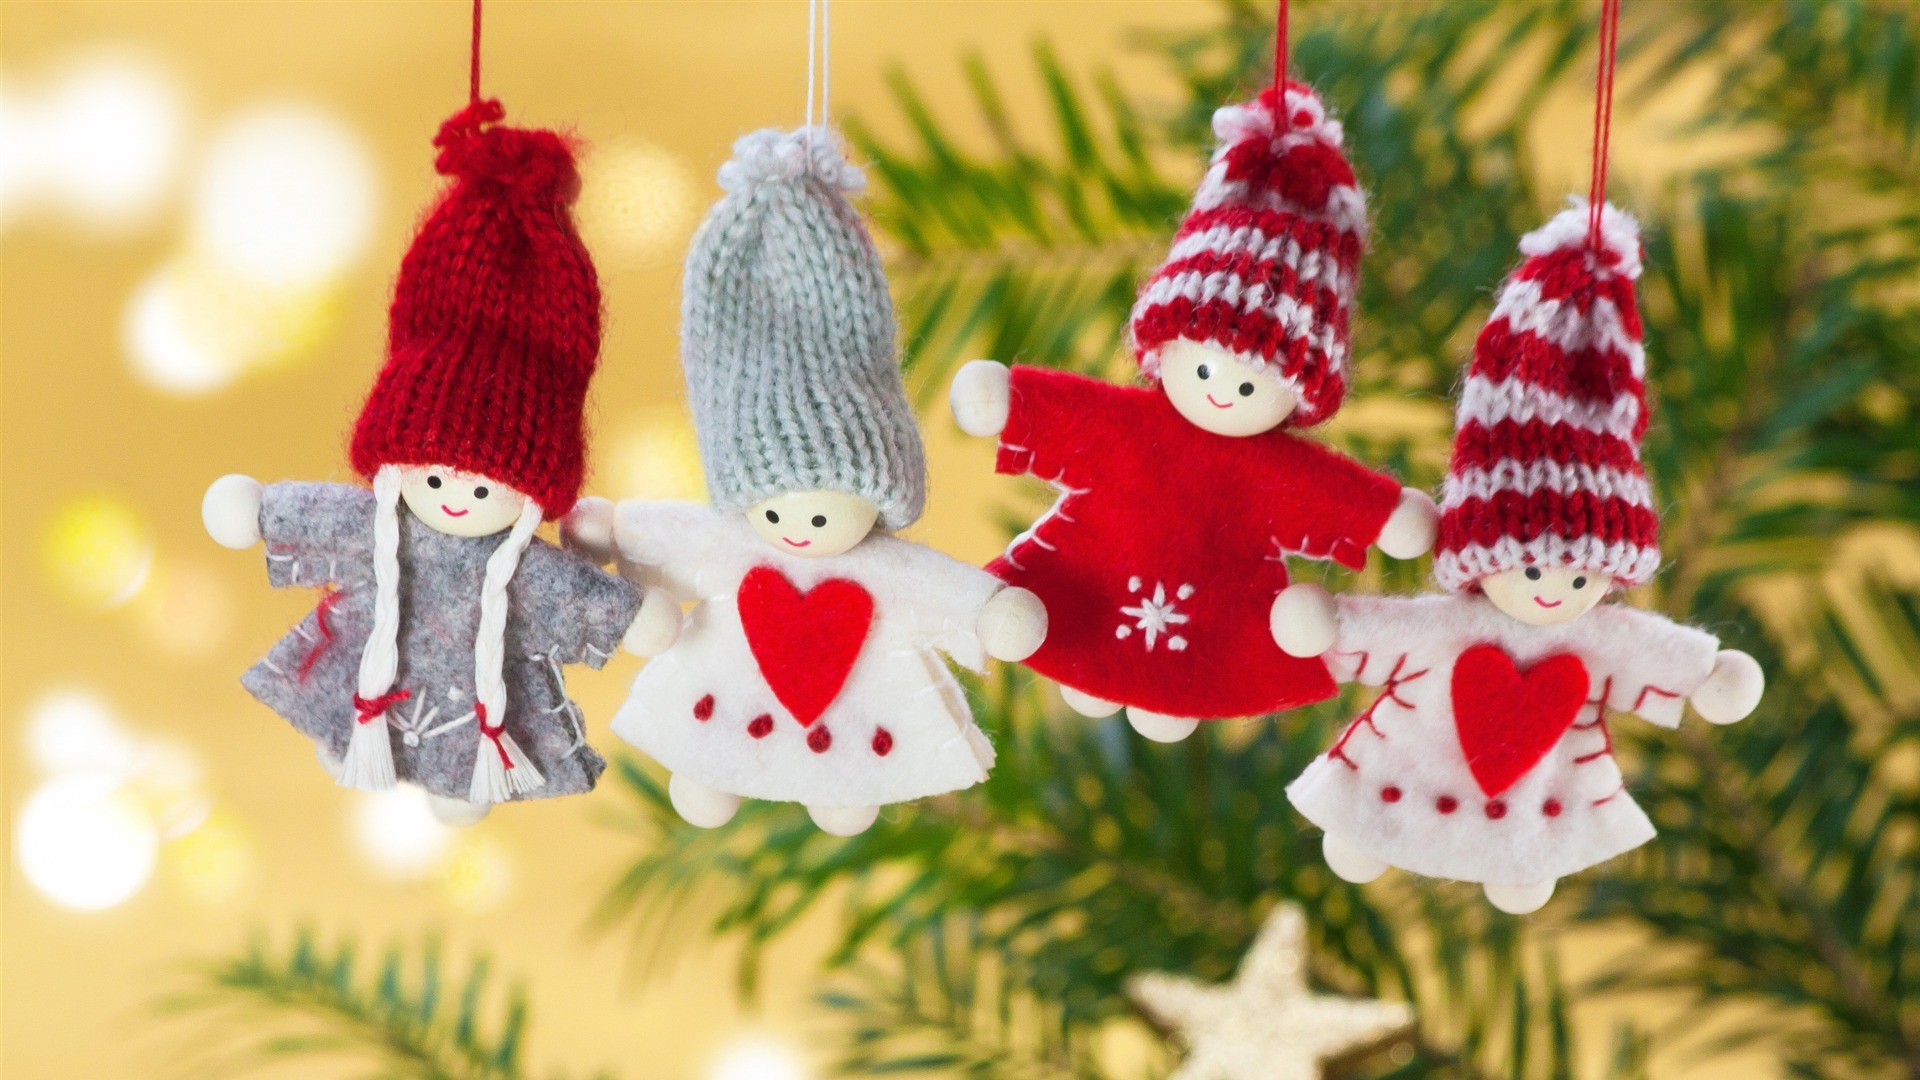 Christmas Toys Angels-Holiday Theme Wallpaper 1920x1080